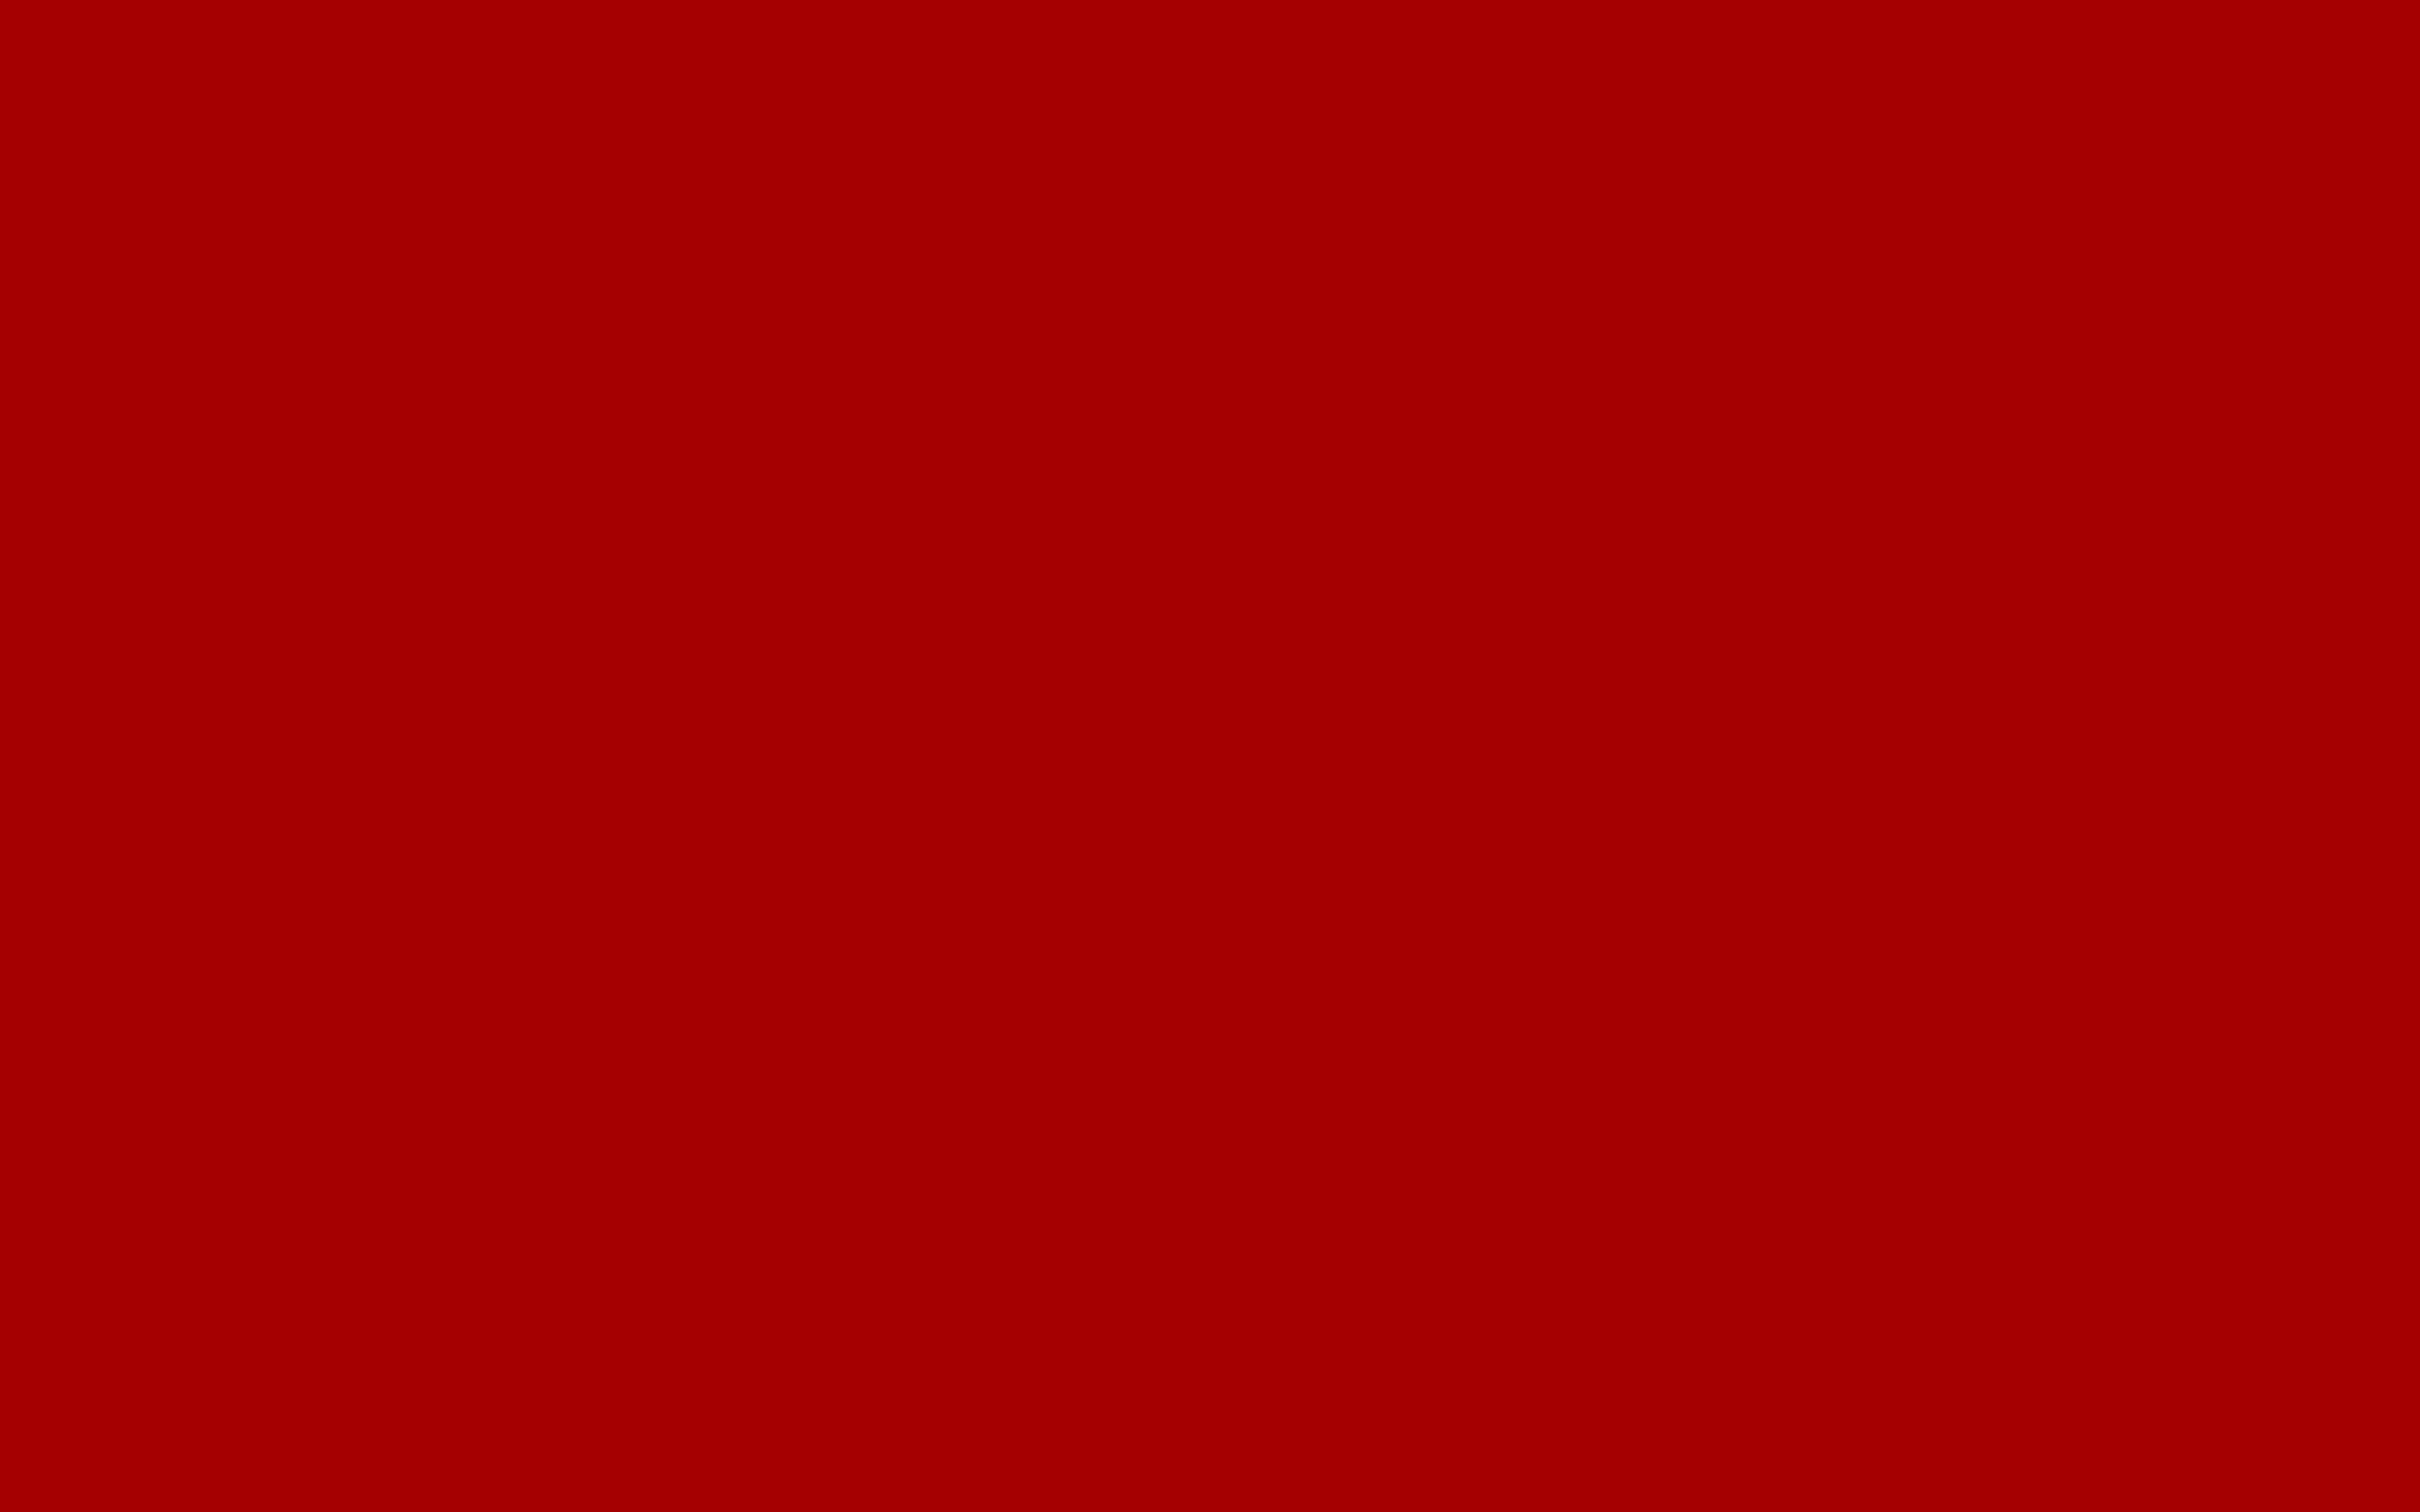 2880x1800 Dark Candy Apple Red Solid Color Background